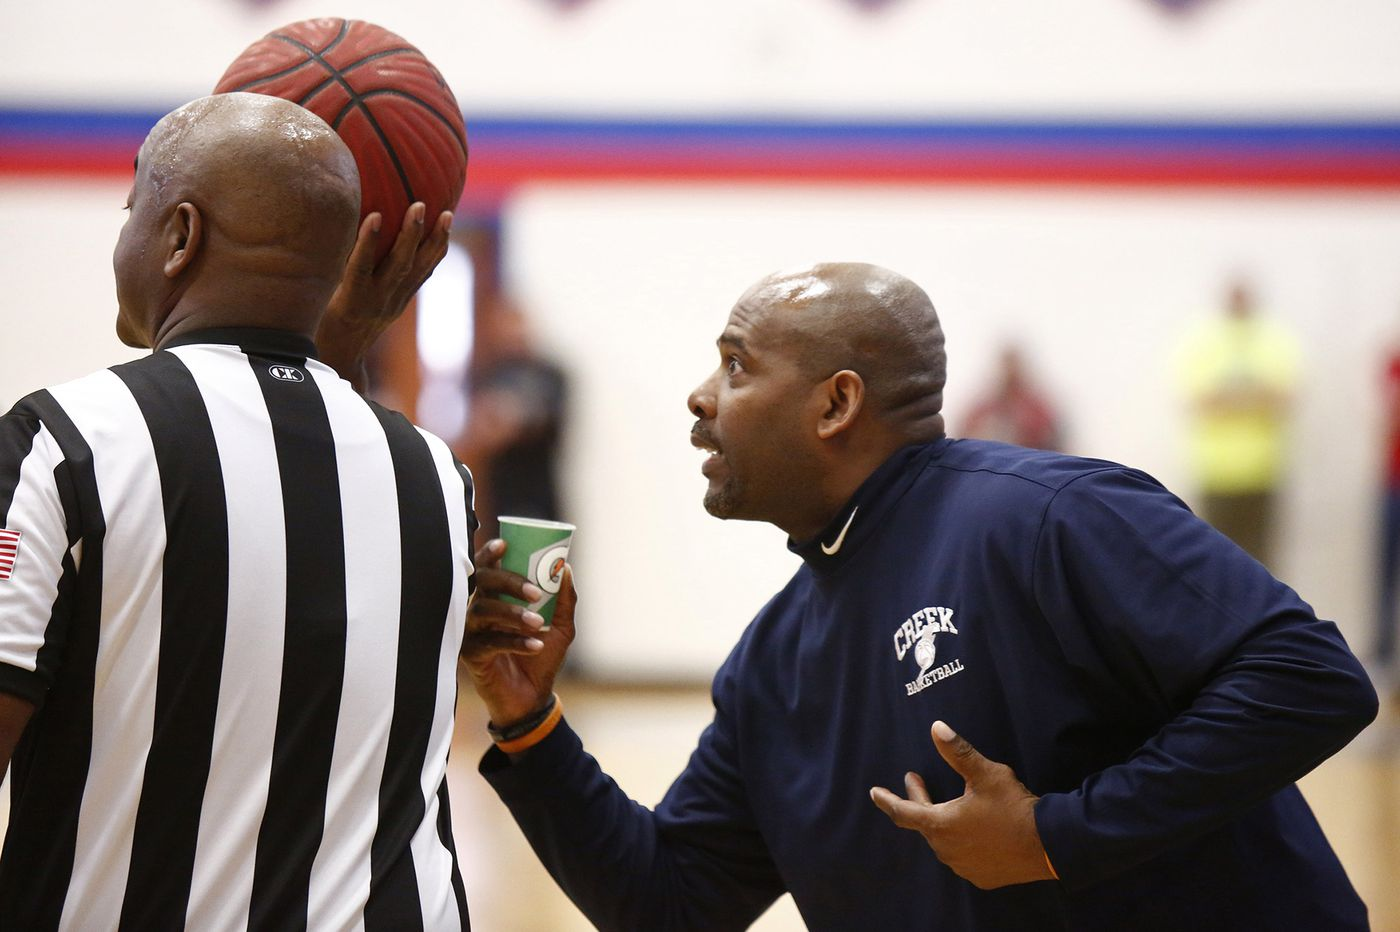 South Jersey Basketball Rankings: Timber Creek rises to No. 5 in Top 10